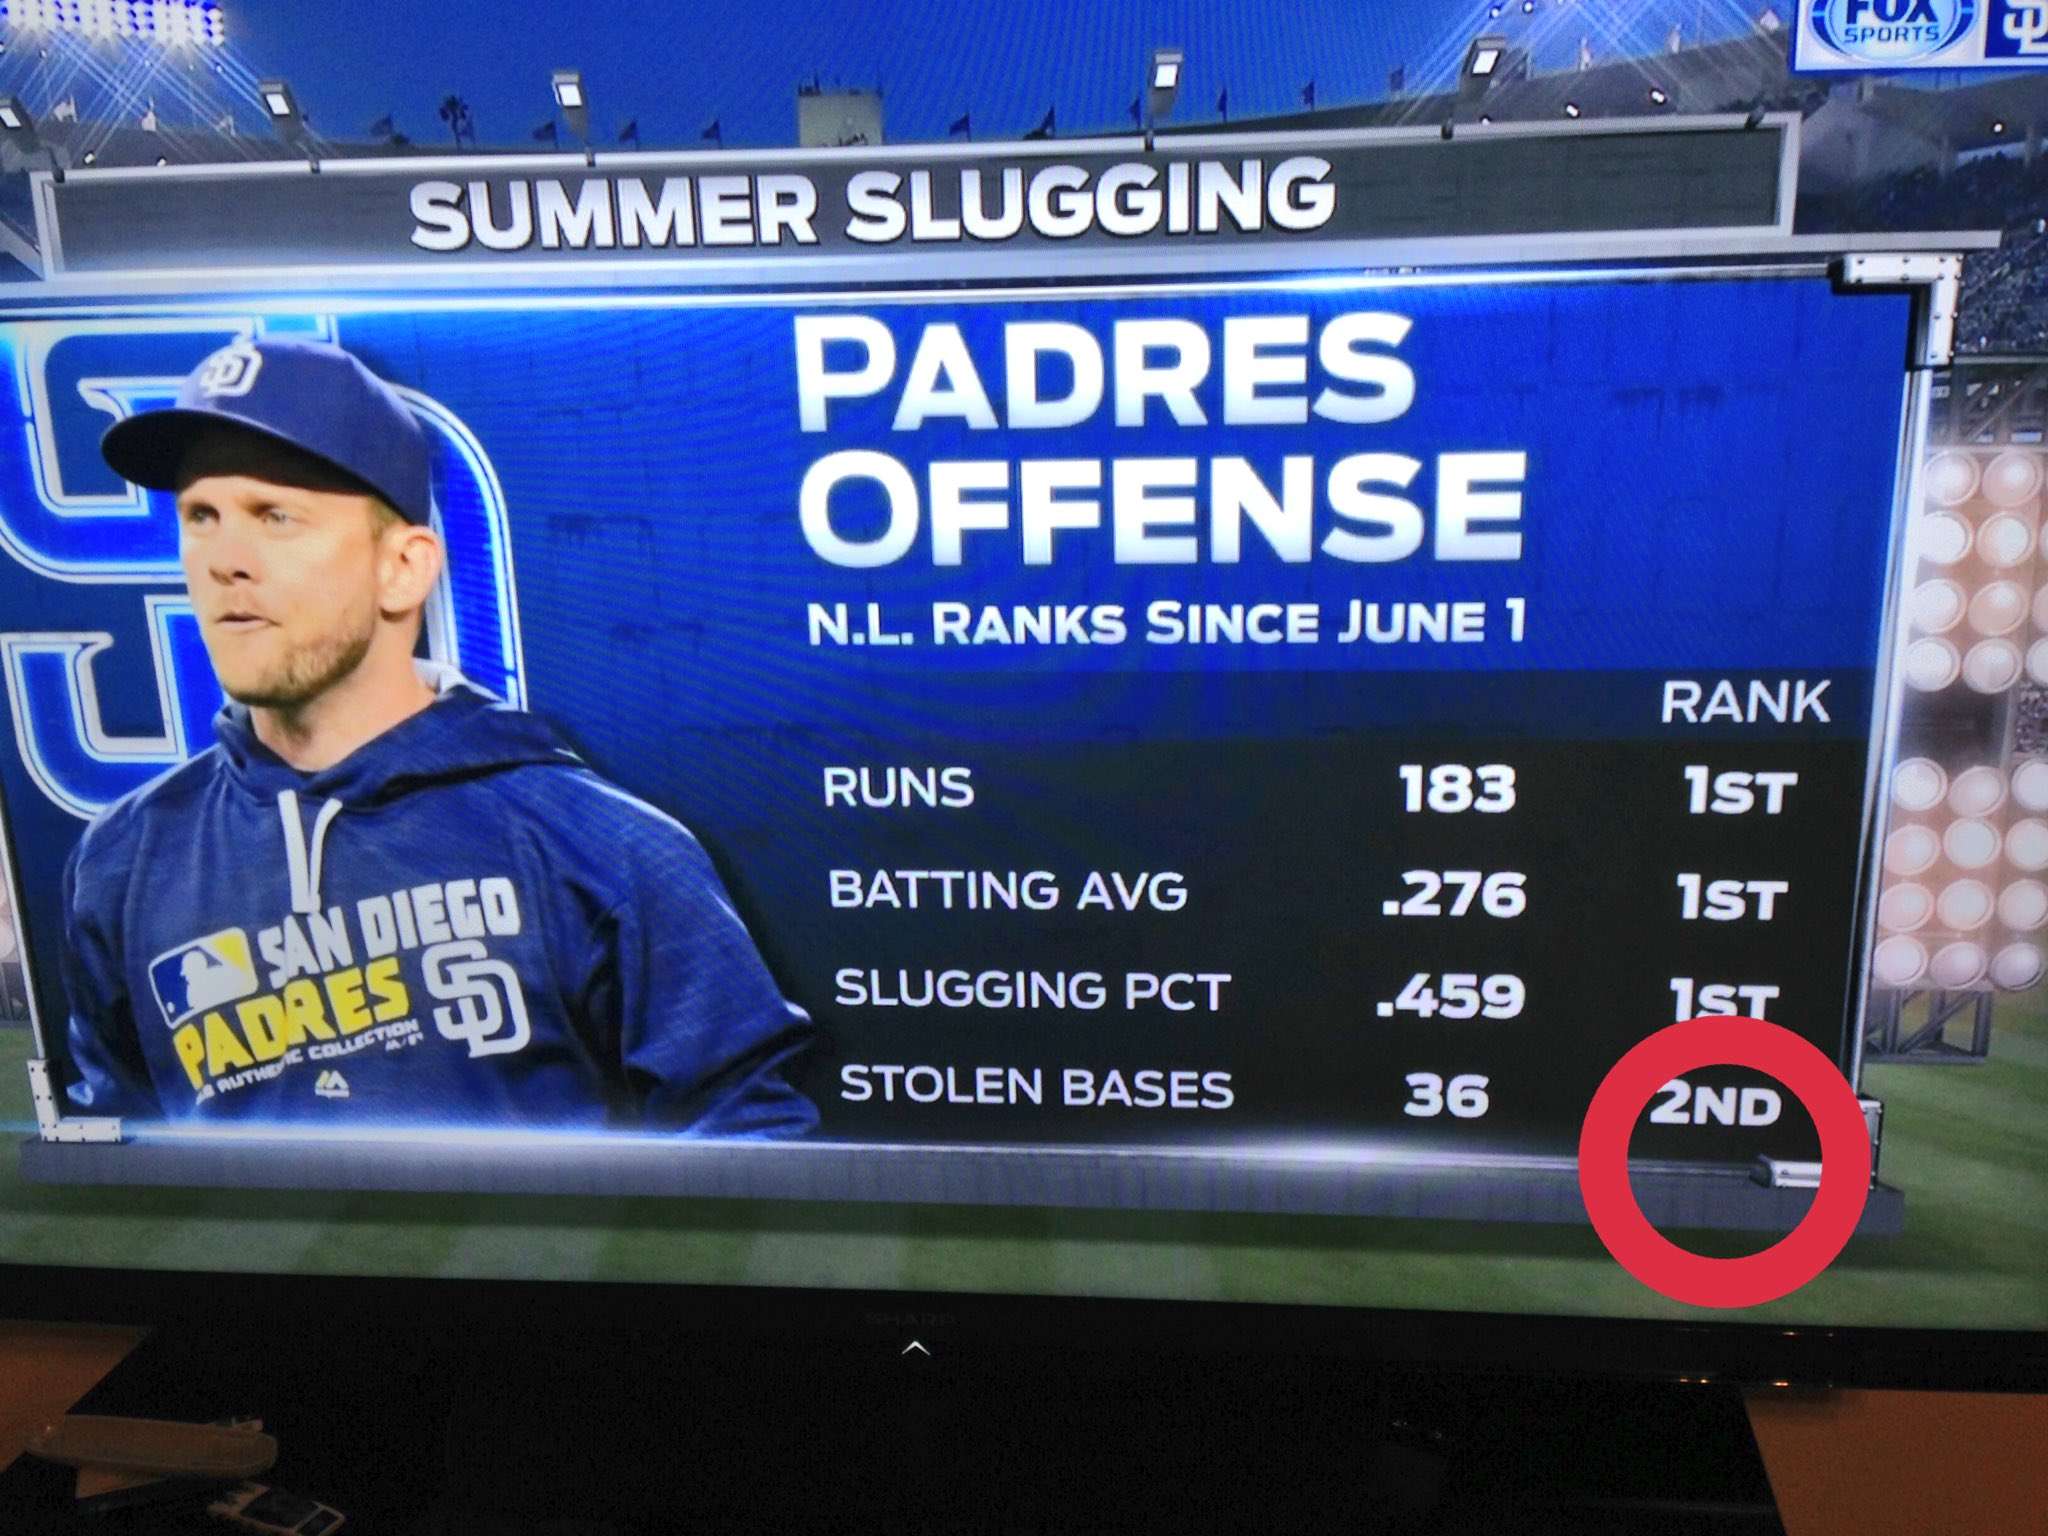 I'm disappointed @Padres... https://t.co/v5wR0KHkpc